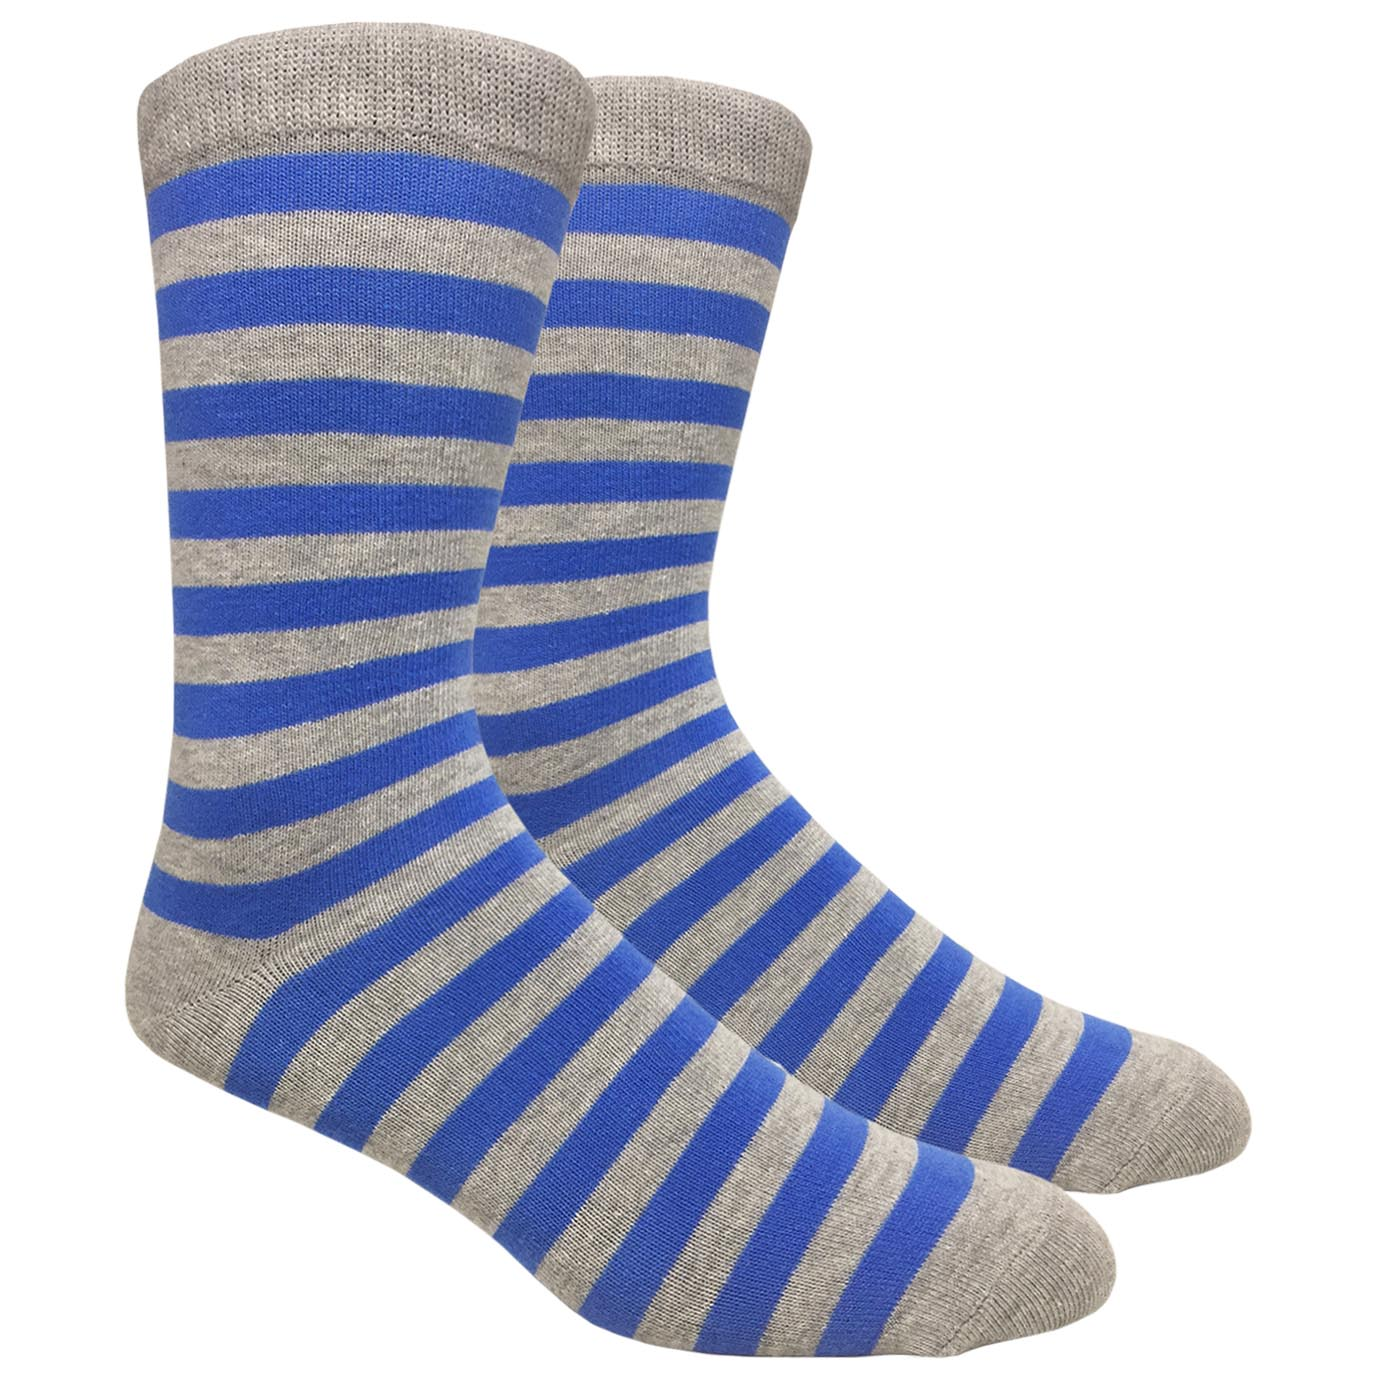 FineFit Black Label Stripe Socks - Grey & Blue